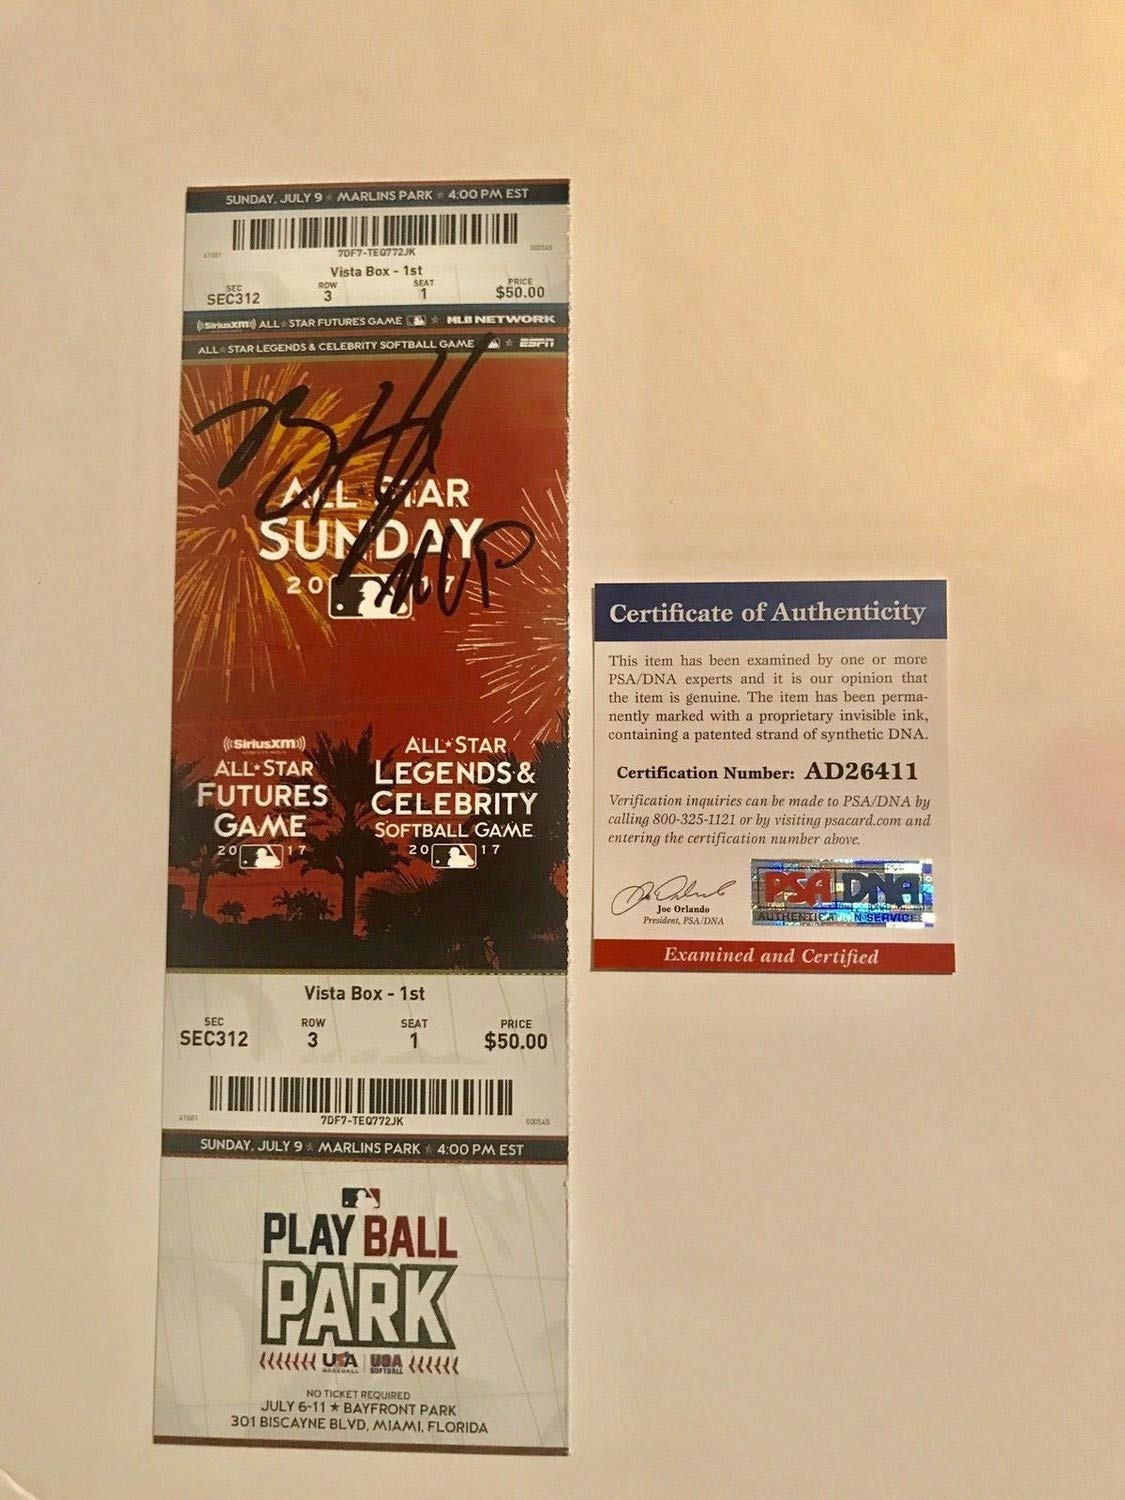 Brent Honeywell Autographed Signed Futures Game Ticket Mvp Tampa Bay Rays PSA/DNA Authentic Cert